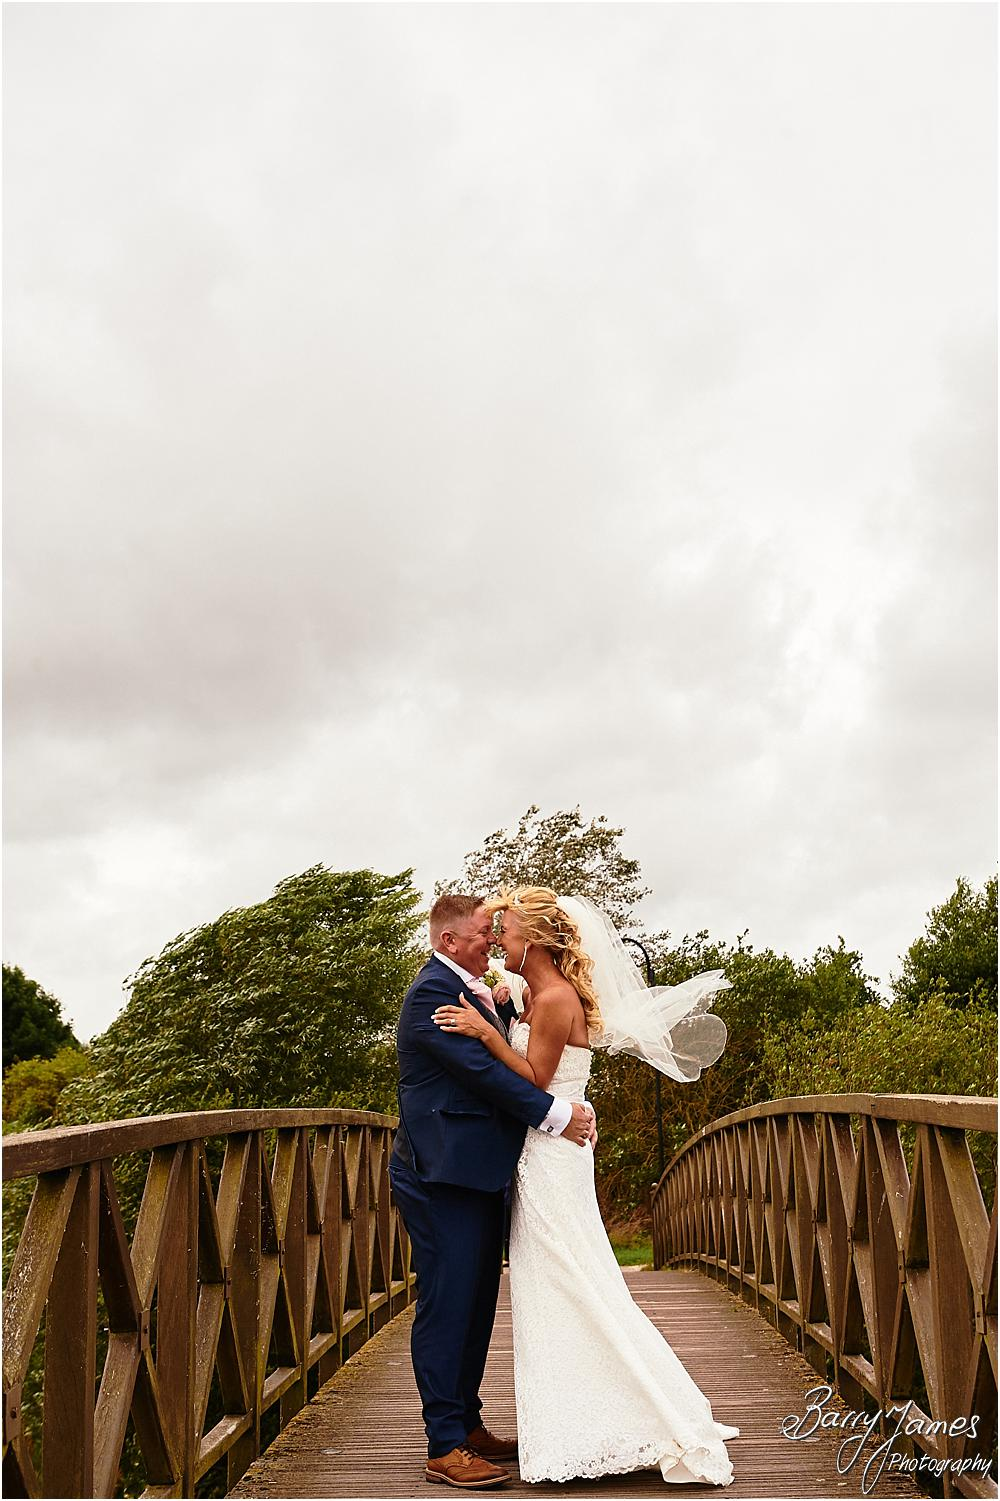 Utilising the stunning setting at The Crows Nest at Barton Marina for creative wedding portraits with Wedding Photographer Barry James